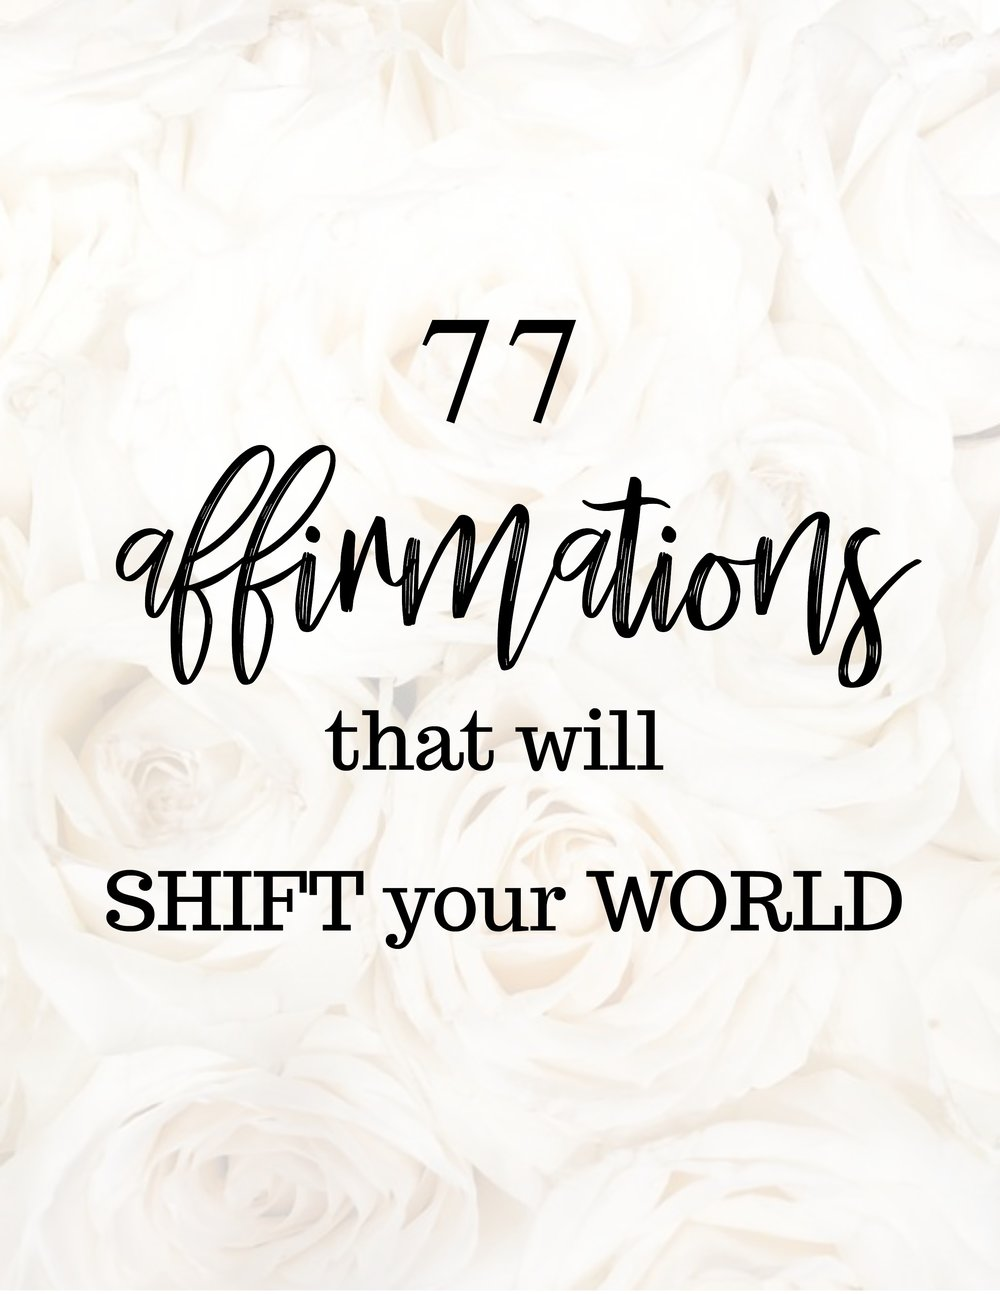 affirmations cover2.jpg